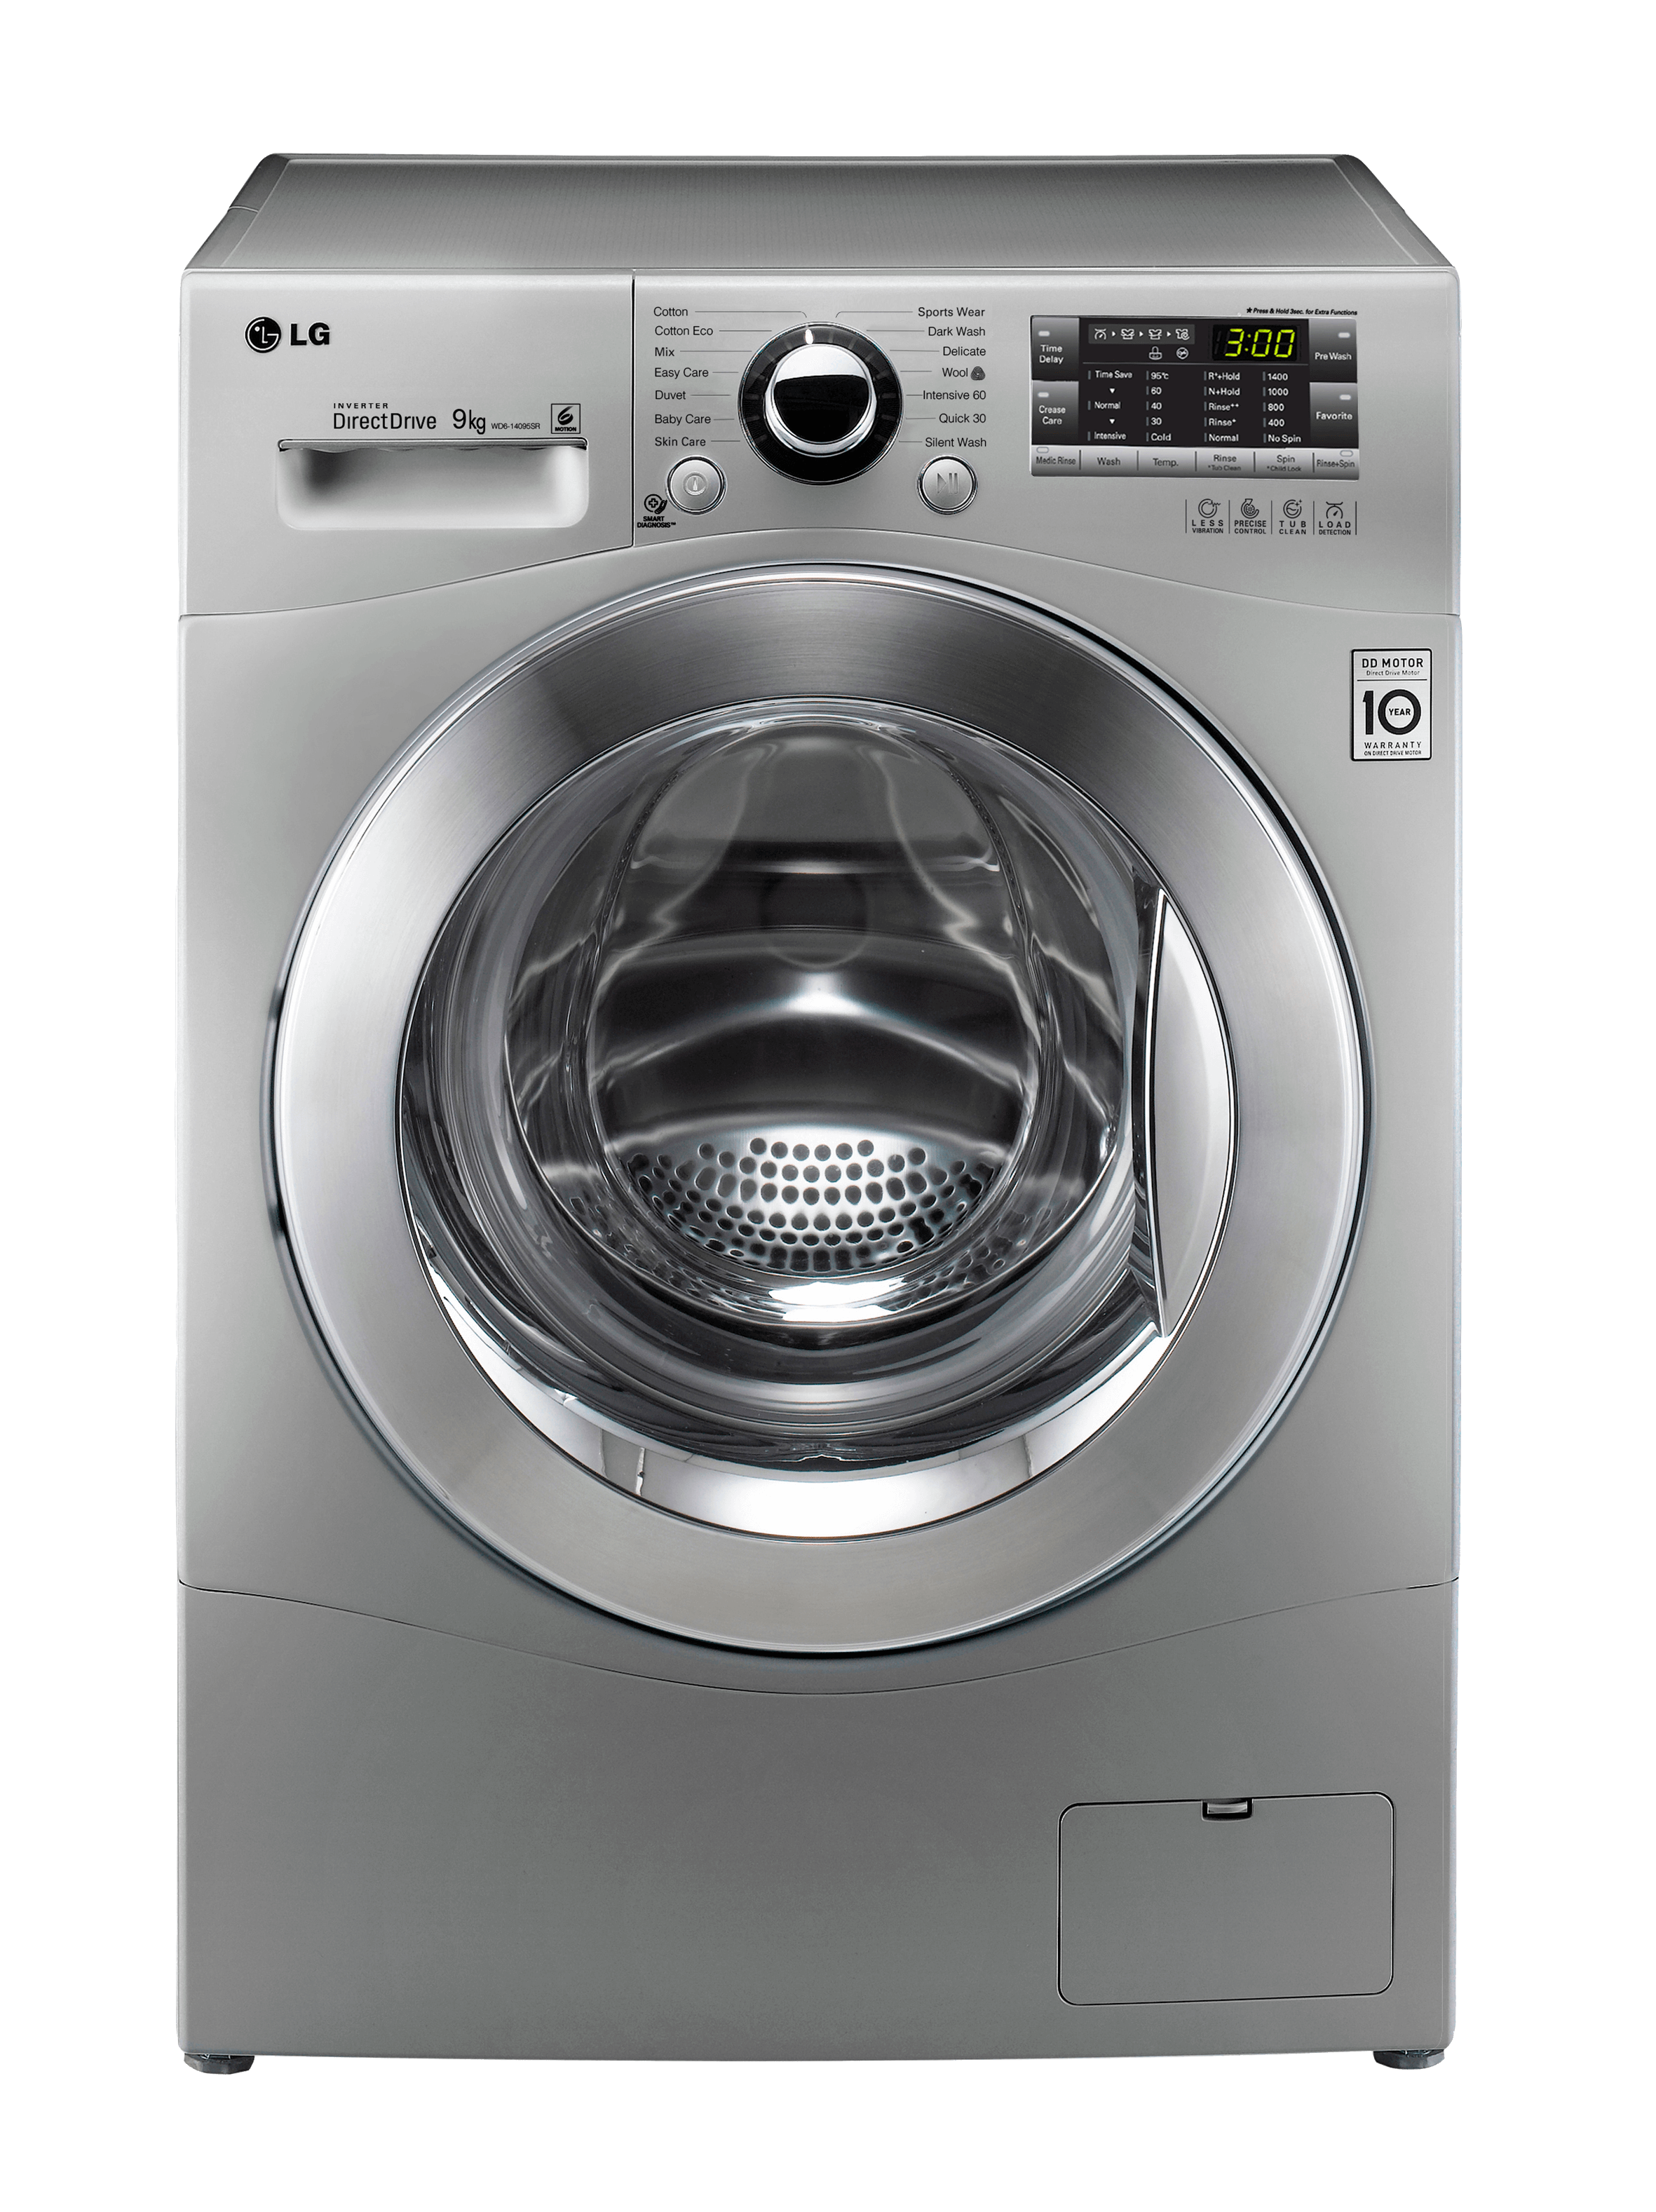 Washing Machine PNG Images Transparent Free Download.